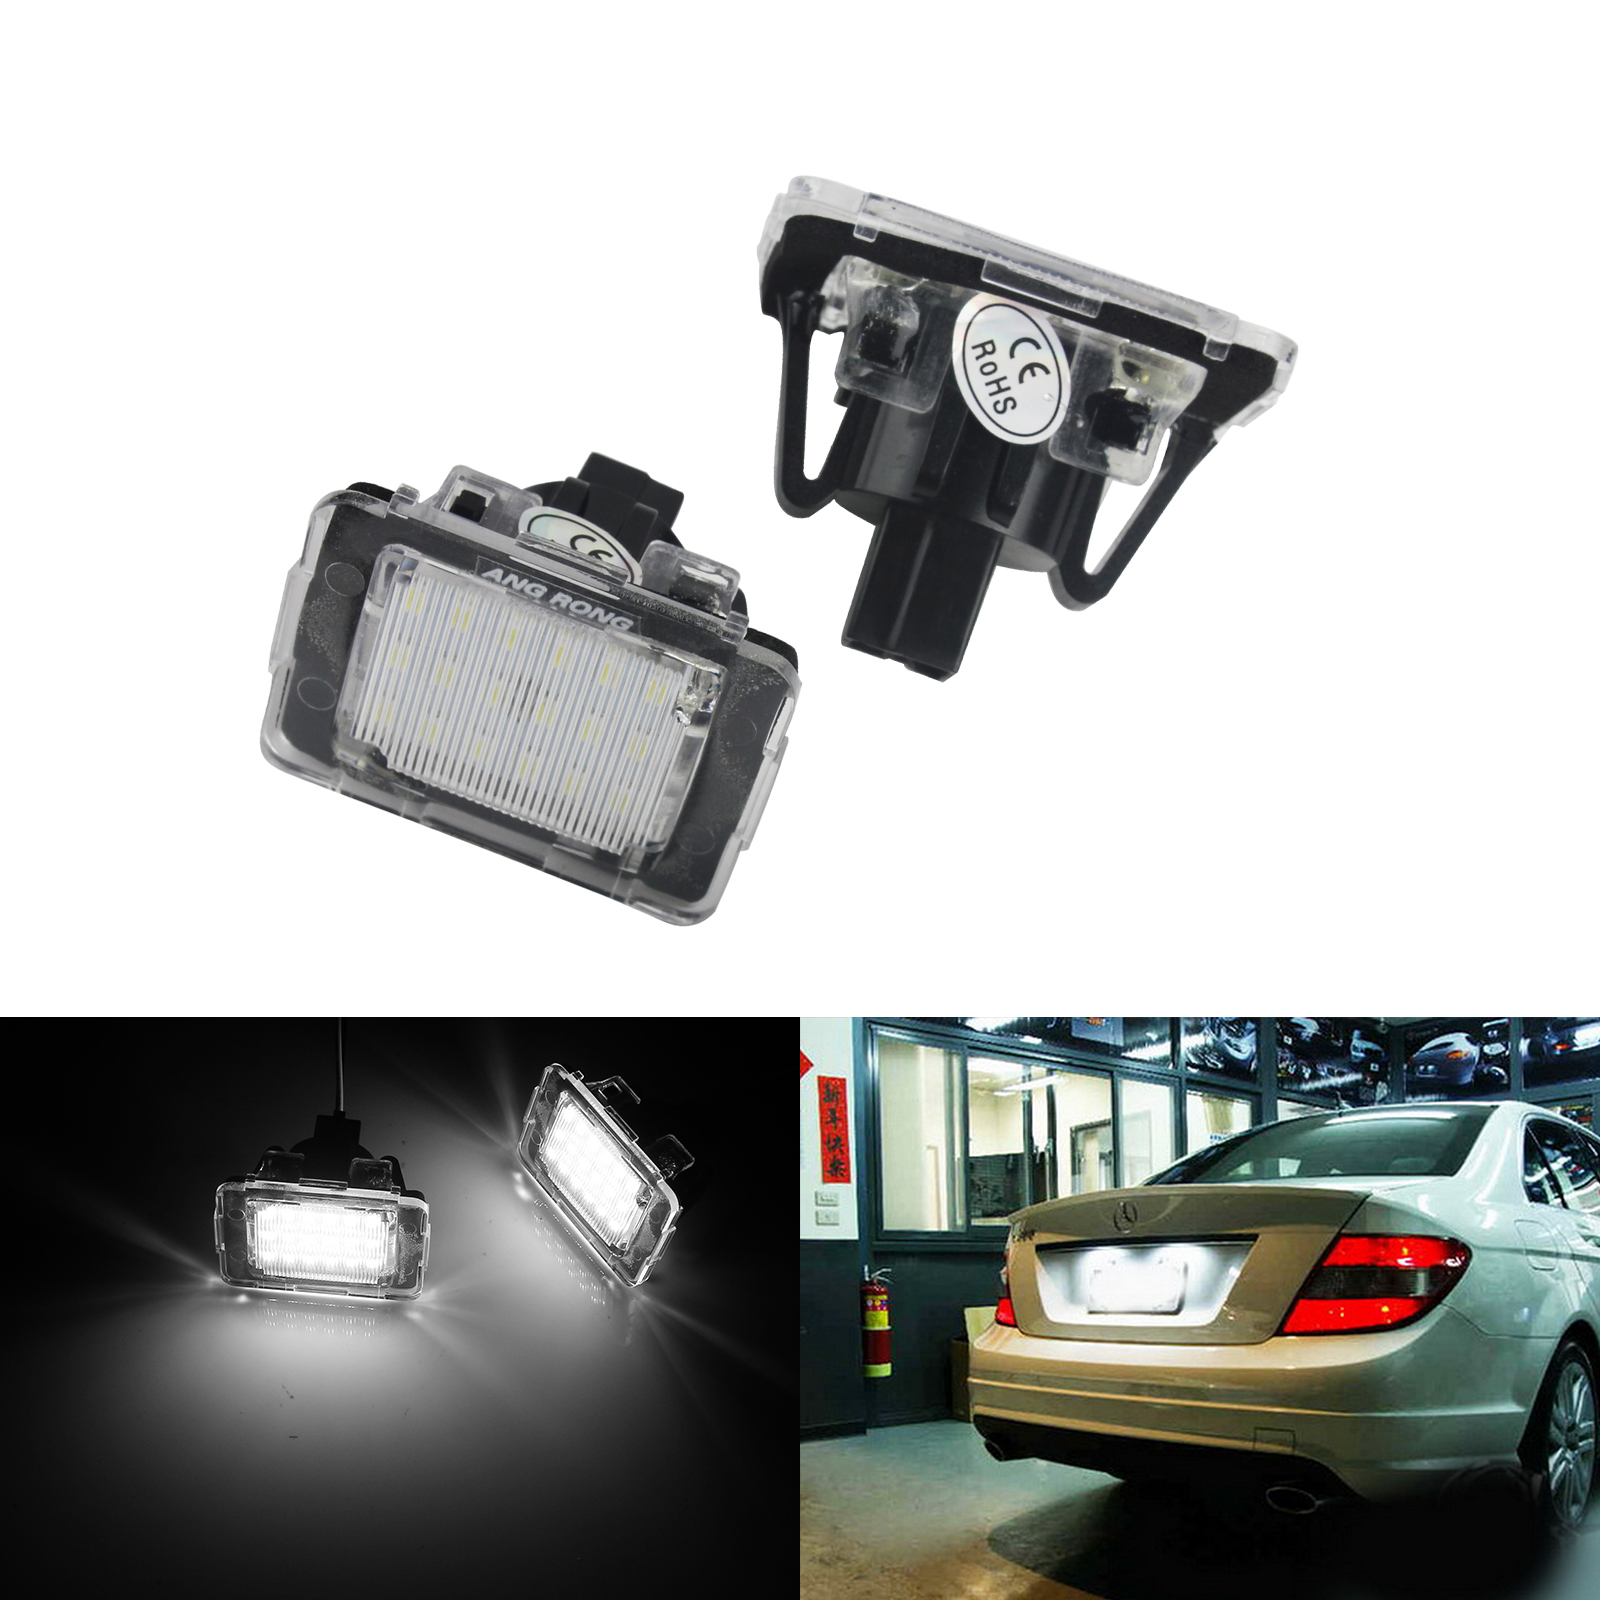 2x LED Licence Number Plate Light White Canbus For MB W176 GL X166 GLA X156 GLE W166 C292 SLK R172 Vito W447